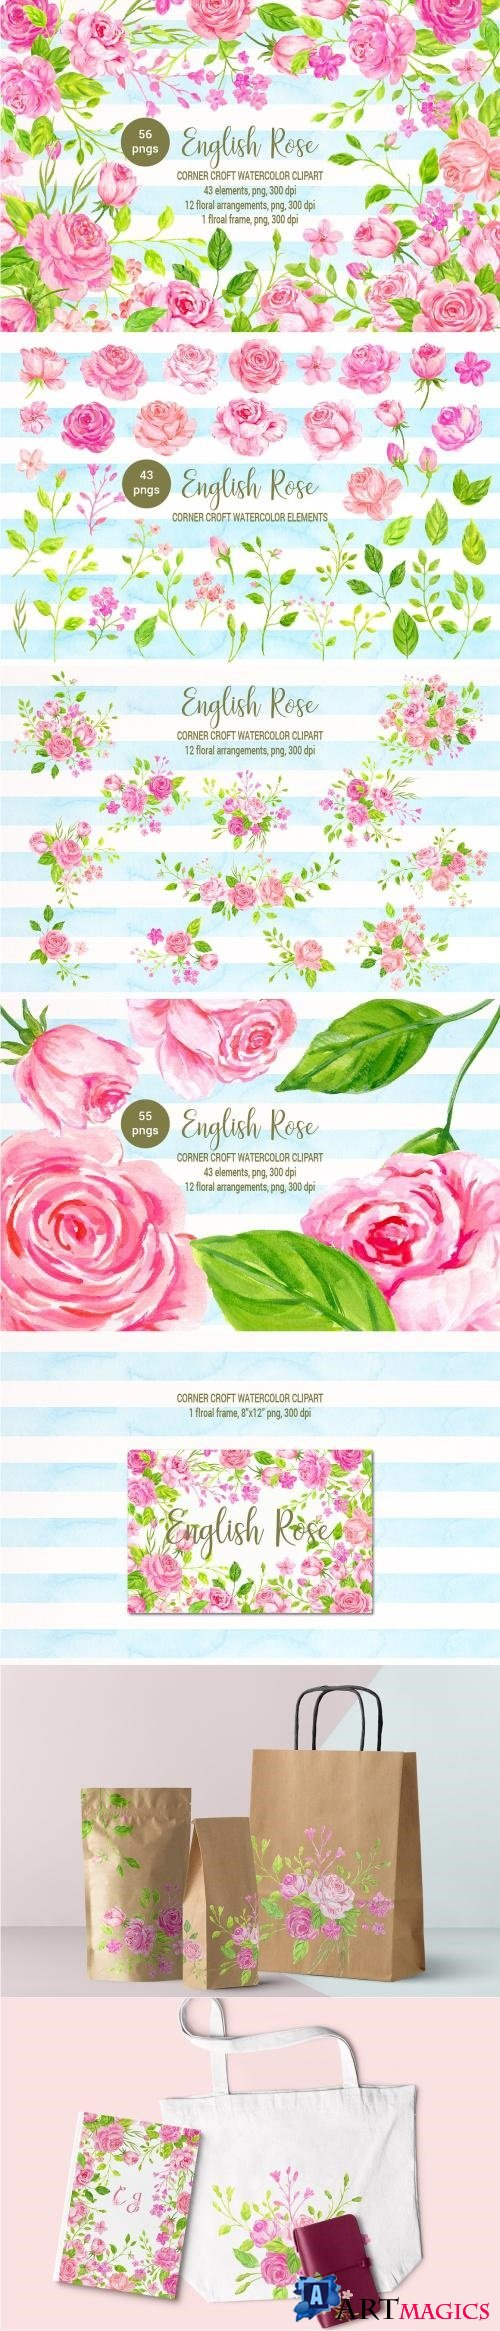 Watercolor English Rose Collection - 2500350